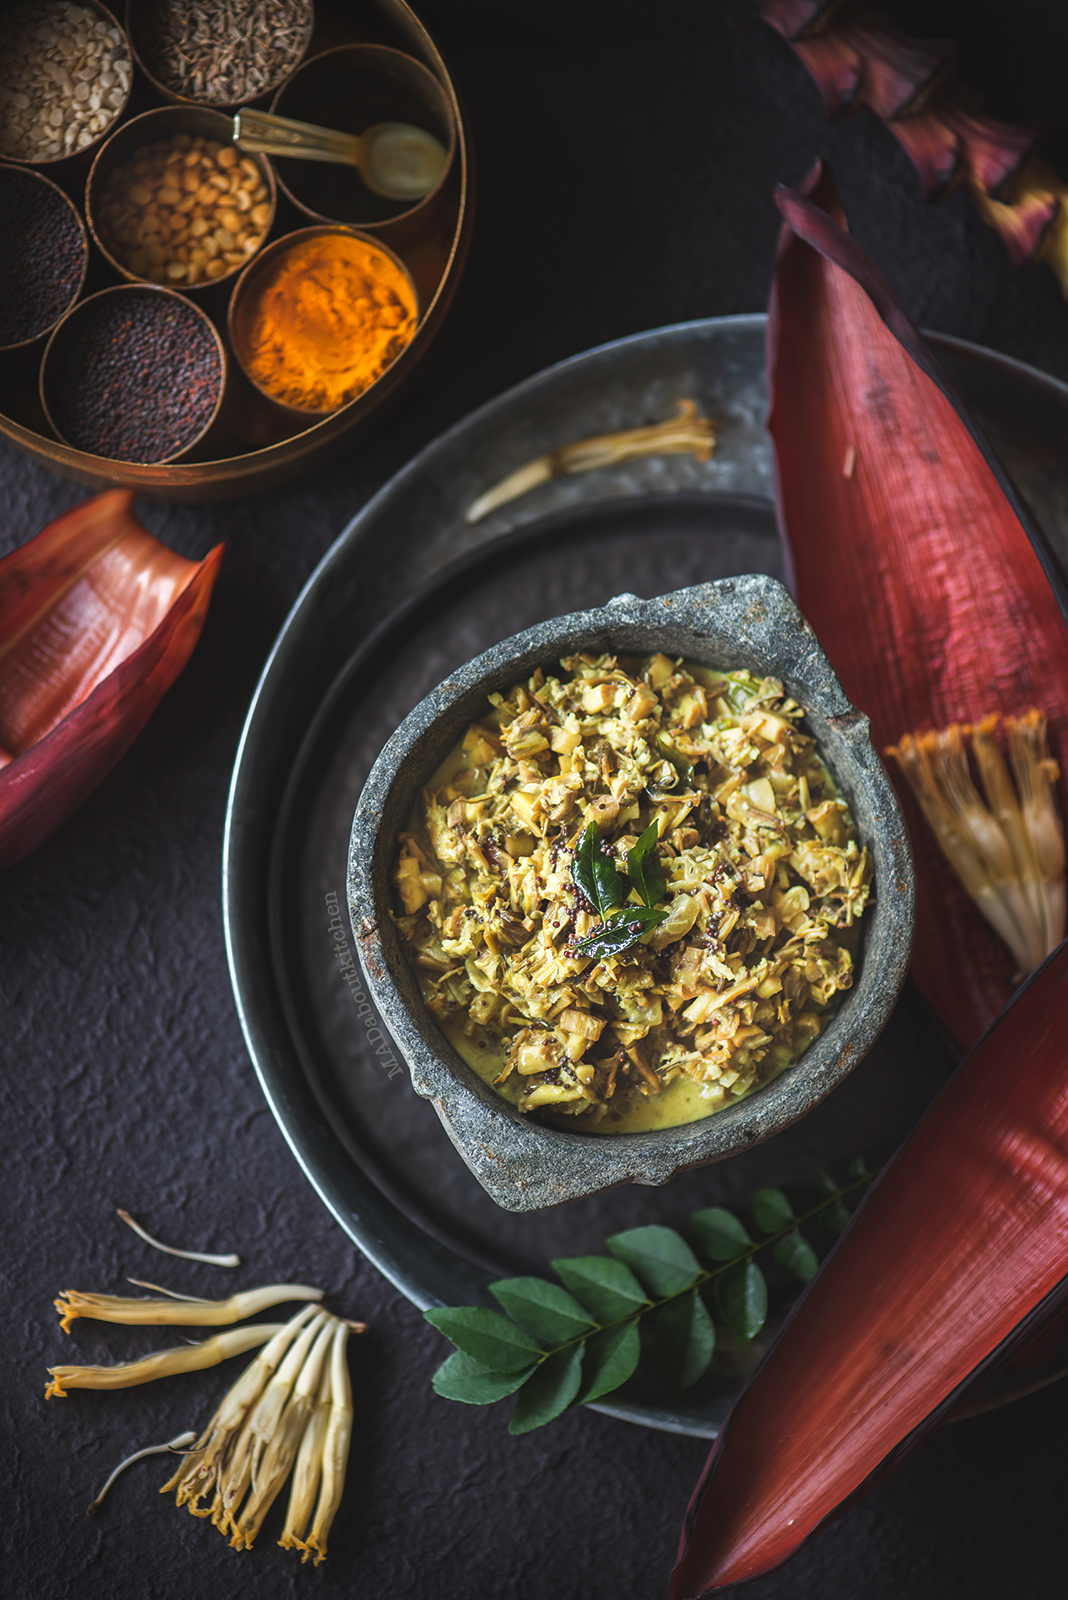 Baale hoovu palya, the banana heart curry is a curry made using banana heart (banana blossom).This curry is made using coconut milk which makes it creamy.